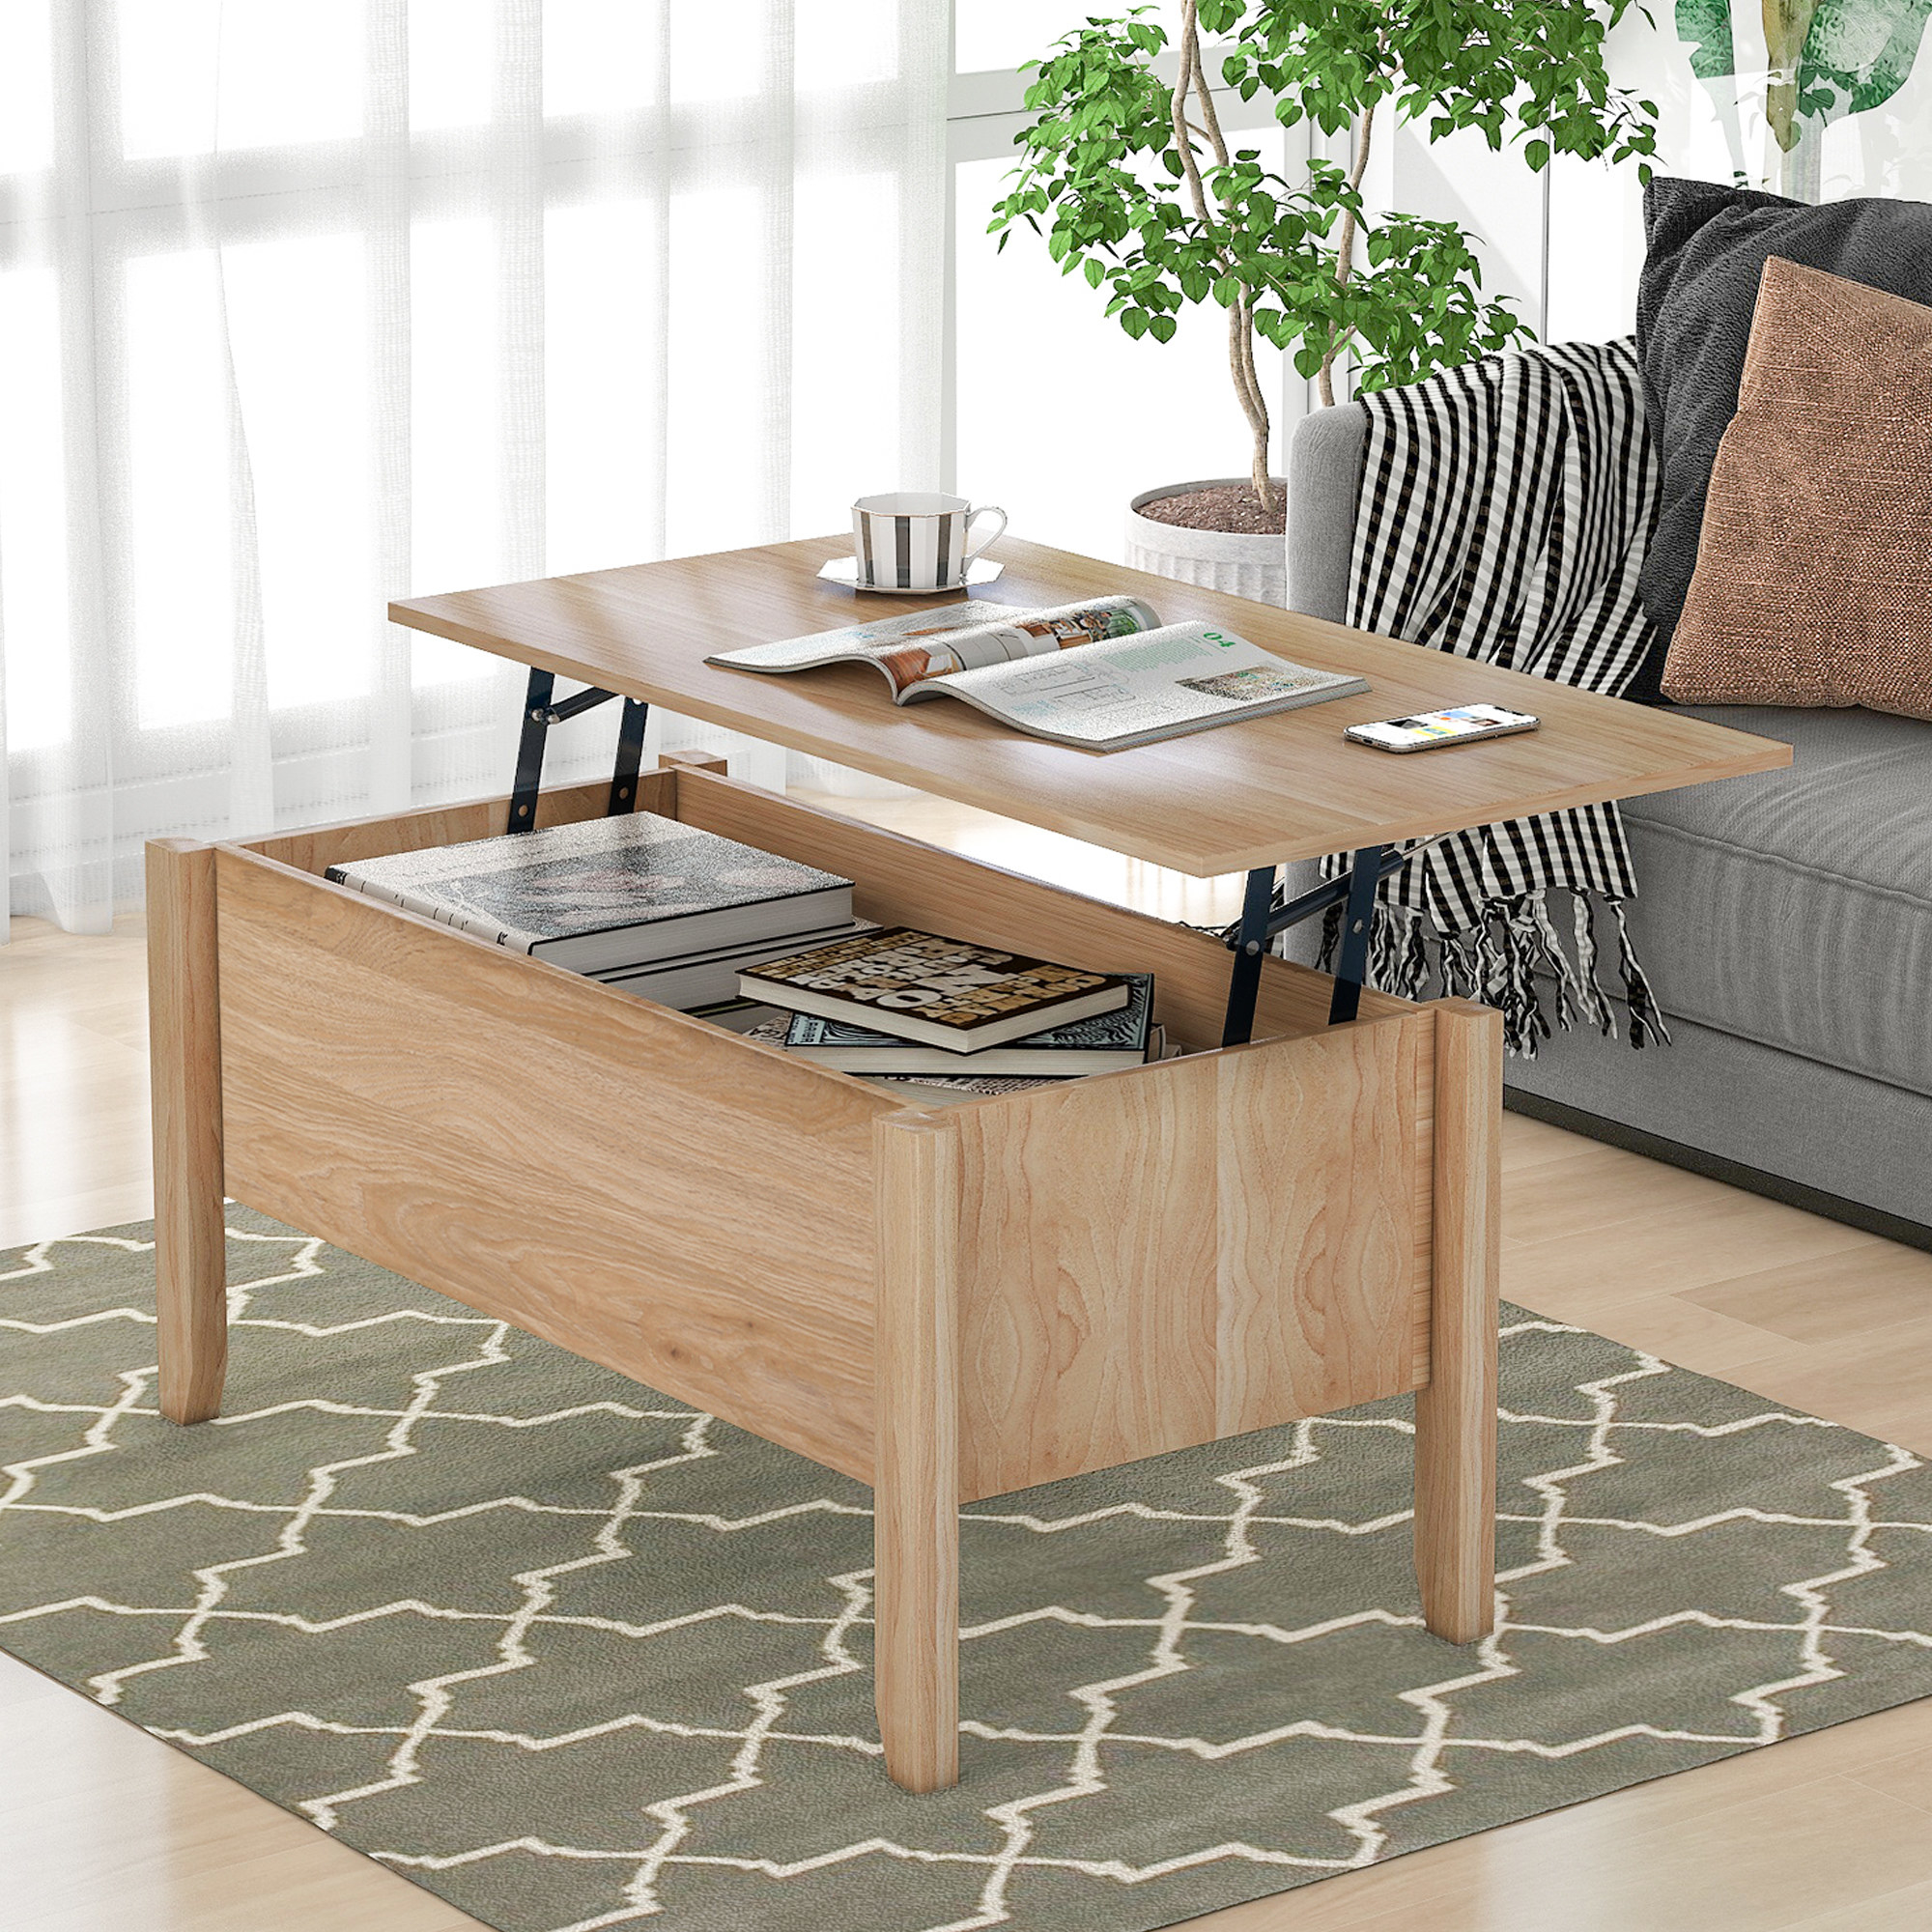 oak coffee table with a top that lifts and shifts over a lap to create a work desk. the coffee table is staged in a living room with a grey couch and grey area rug